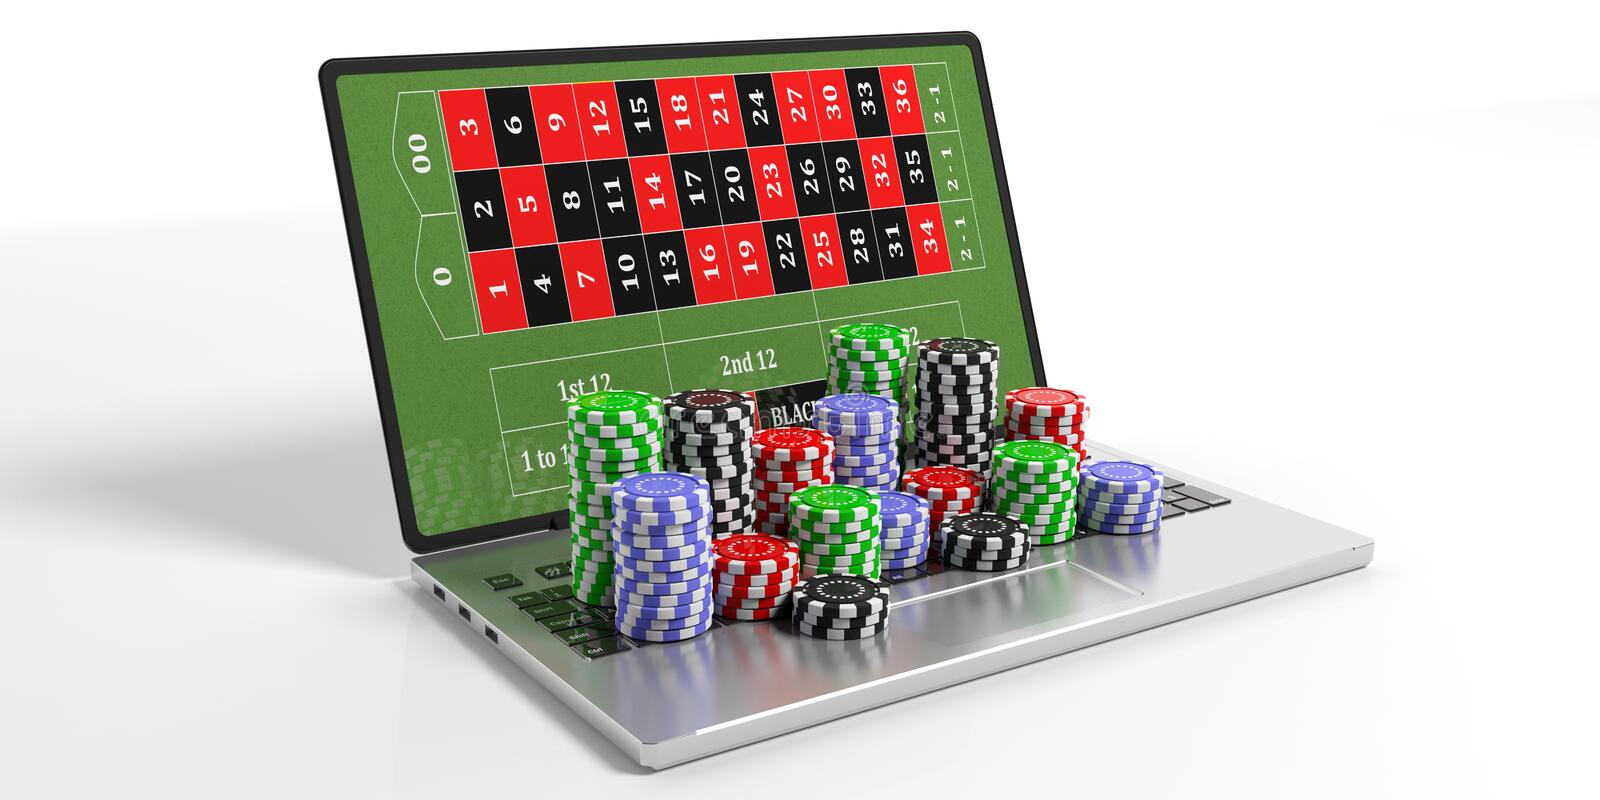 Casino chips and laptop on white background. 3d illustration. Online casino concept. Chips and laptop on white background. 3d illustration vector illustration